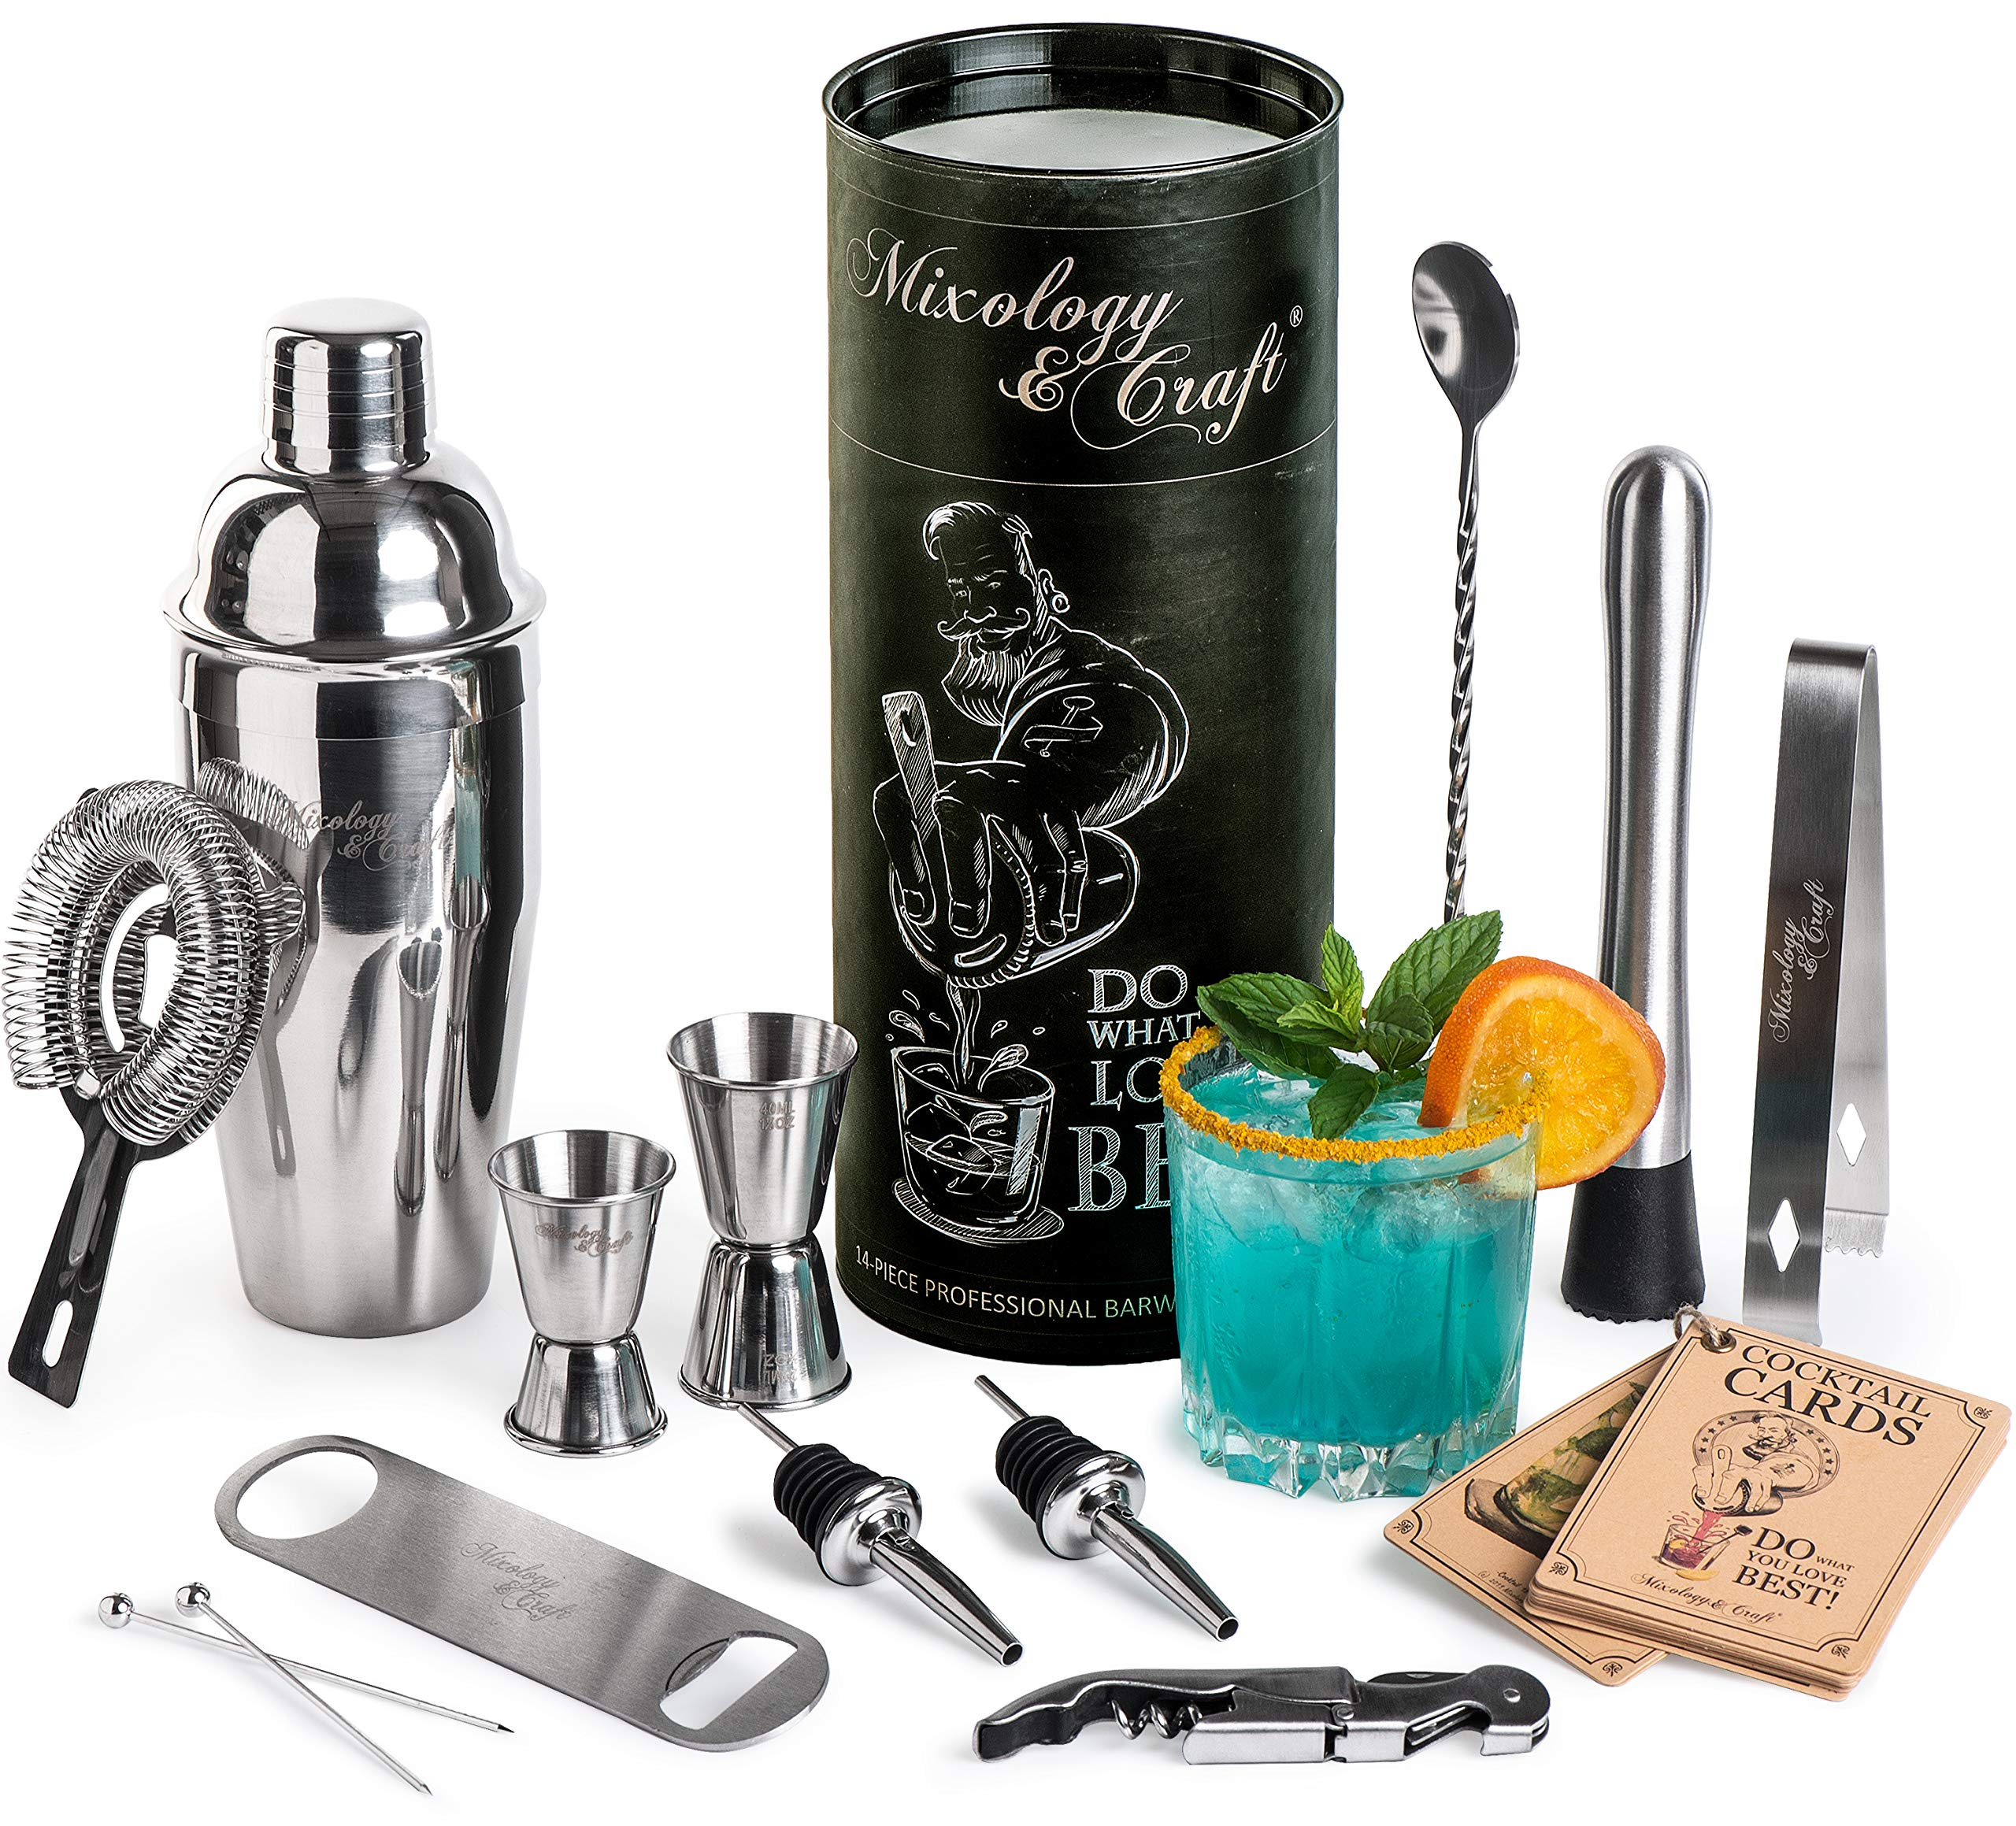 Mixology Bartender Kit: 14-Piece Cocktail Shaker Set - Bar Tool Set For Home and Professional Bartending - Martini Shaker Set with Drink Mixing Bar Tools - Exclusive Cocktail Picks and Recipes Bonus by Mixology & Craft